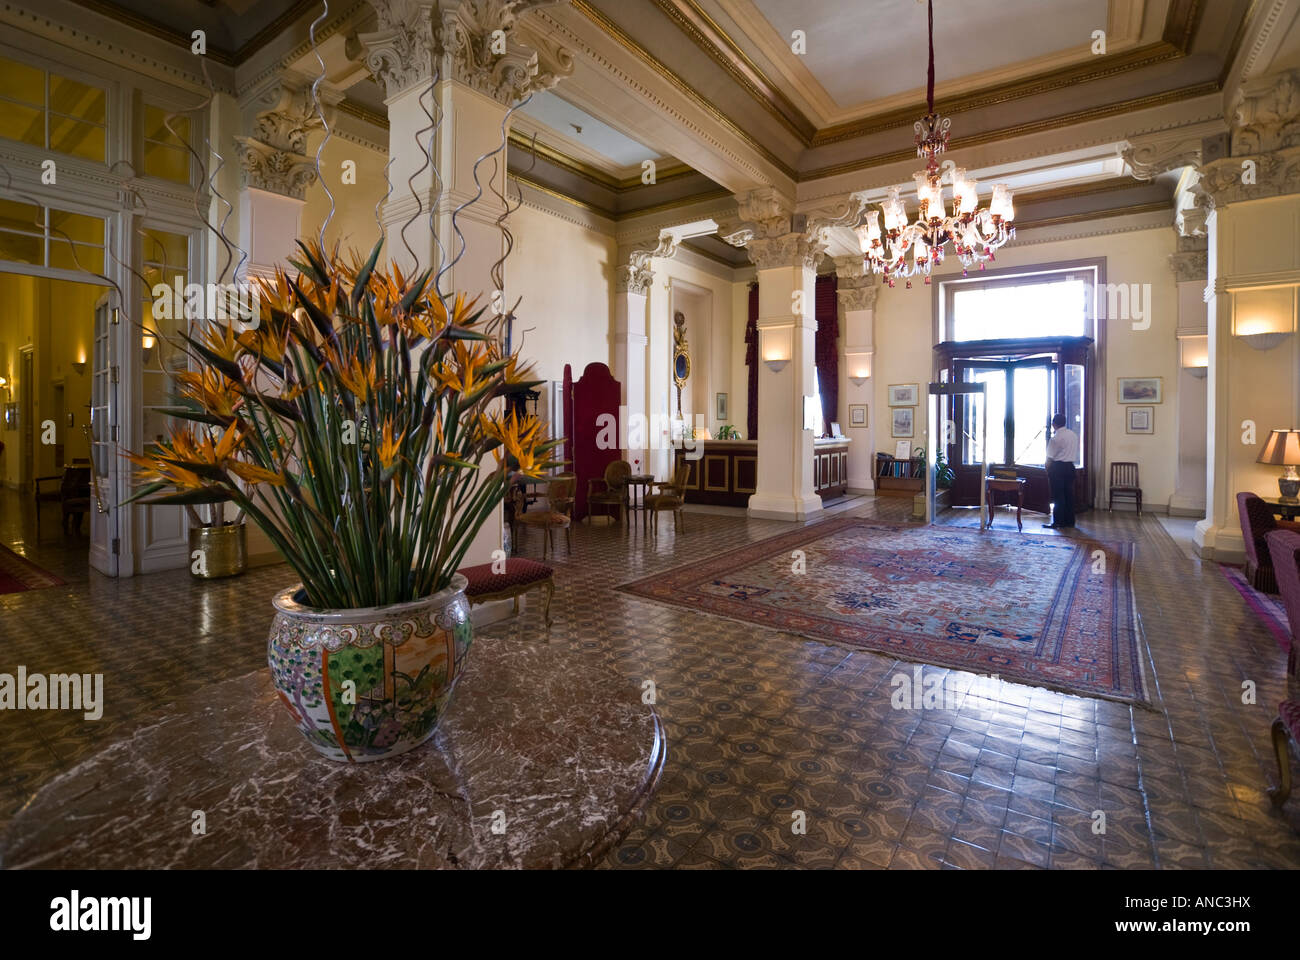 Hotel Entrance Foyer : Grand entrance hall with chandelier stock photos